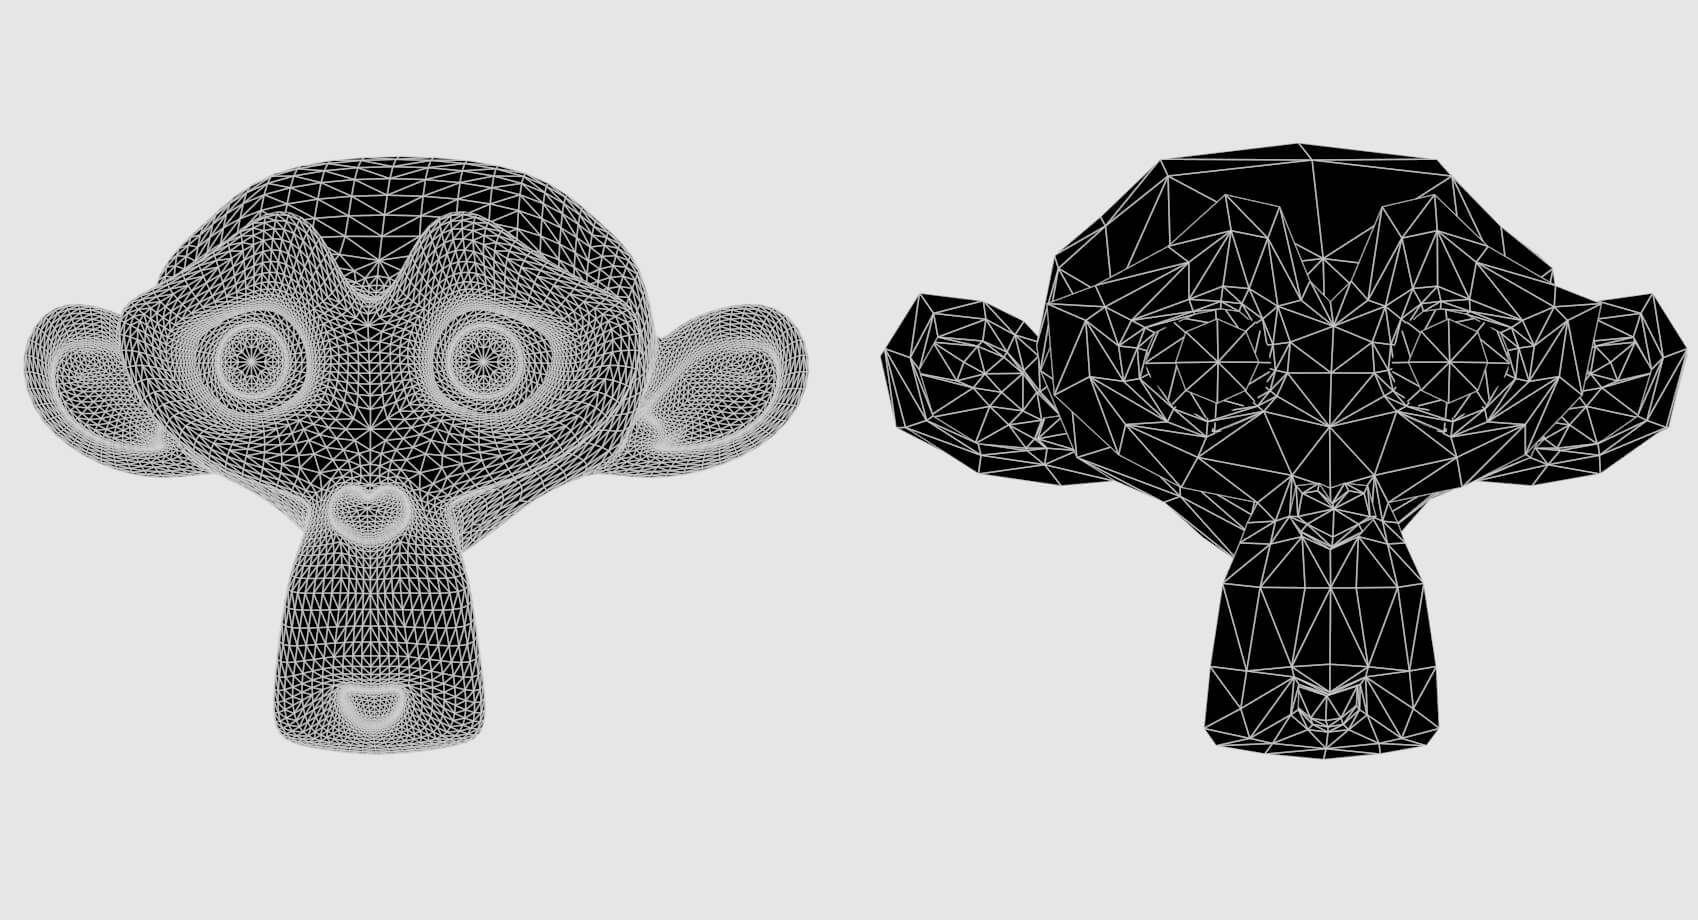 What is the difference between High Poly and Low Poly models in 3D modeling?